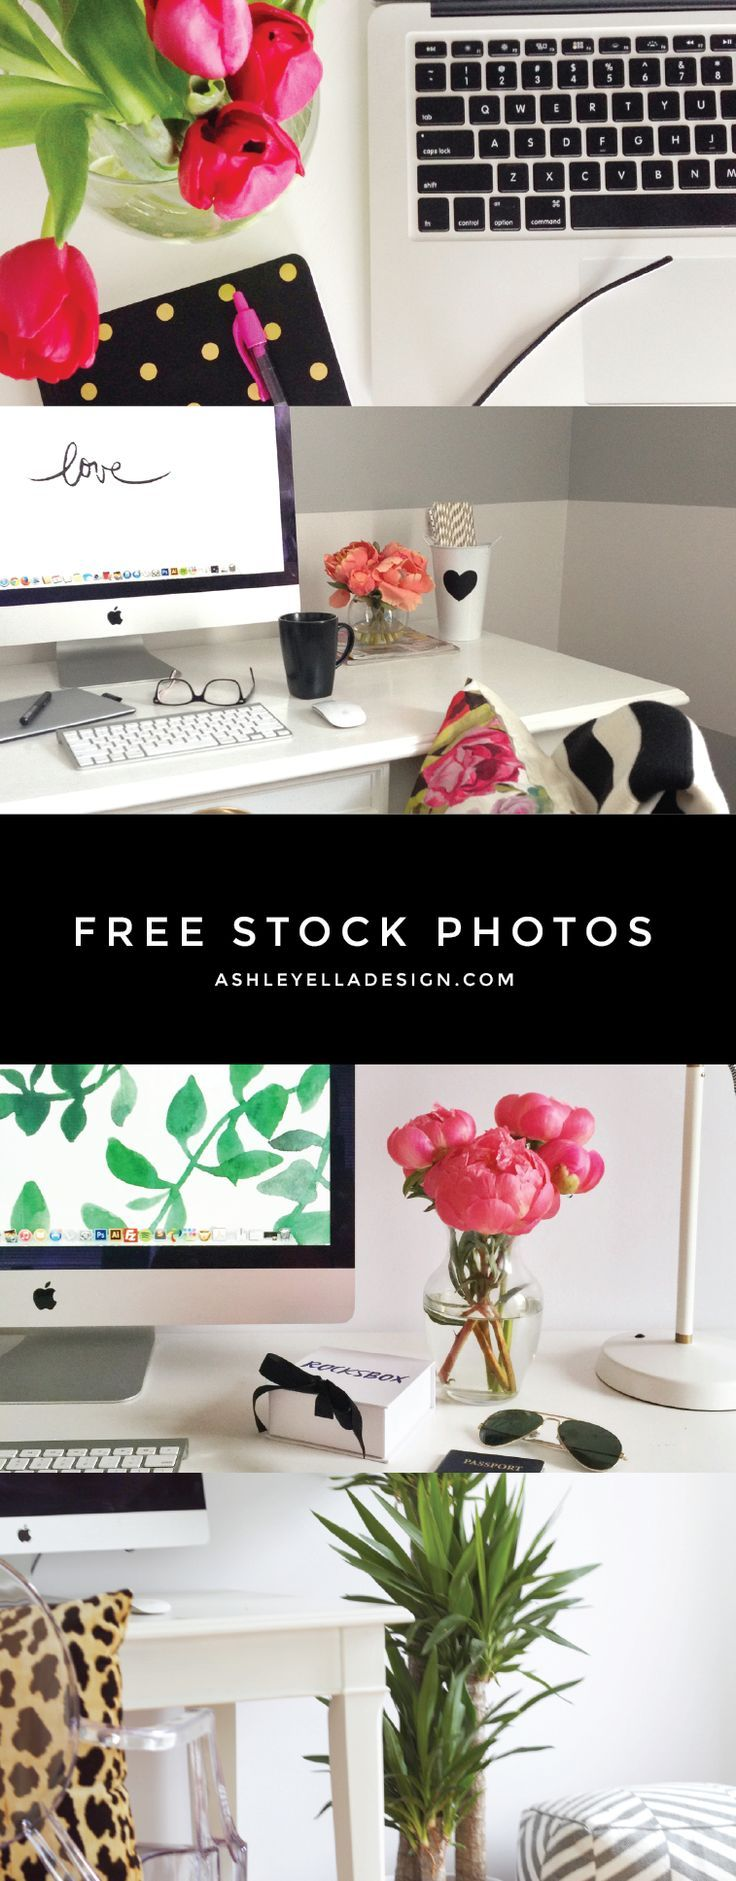 Free Stock Photos from Ashley Ella Design